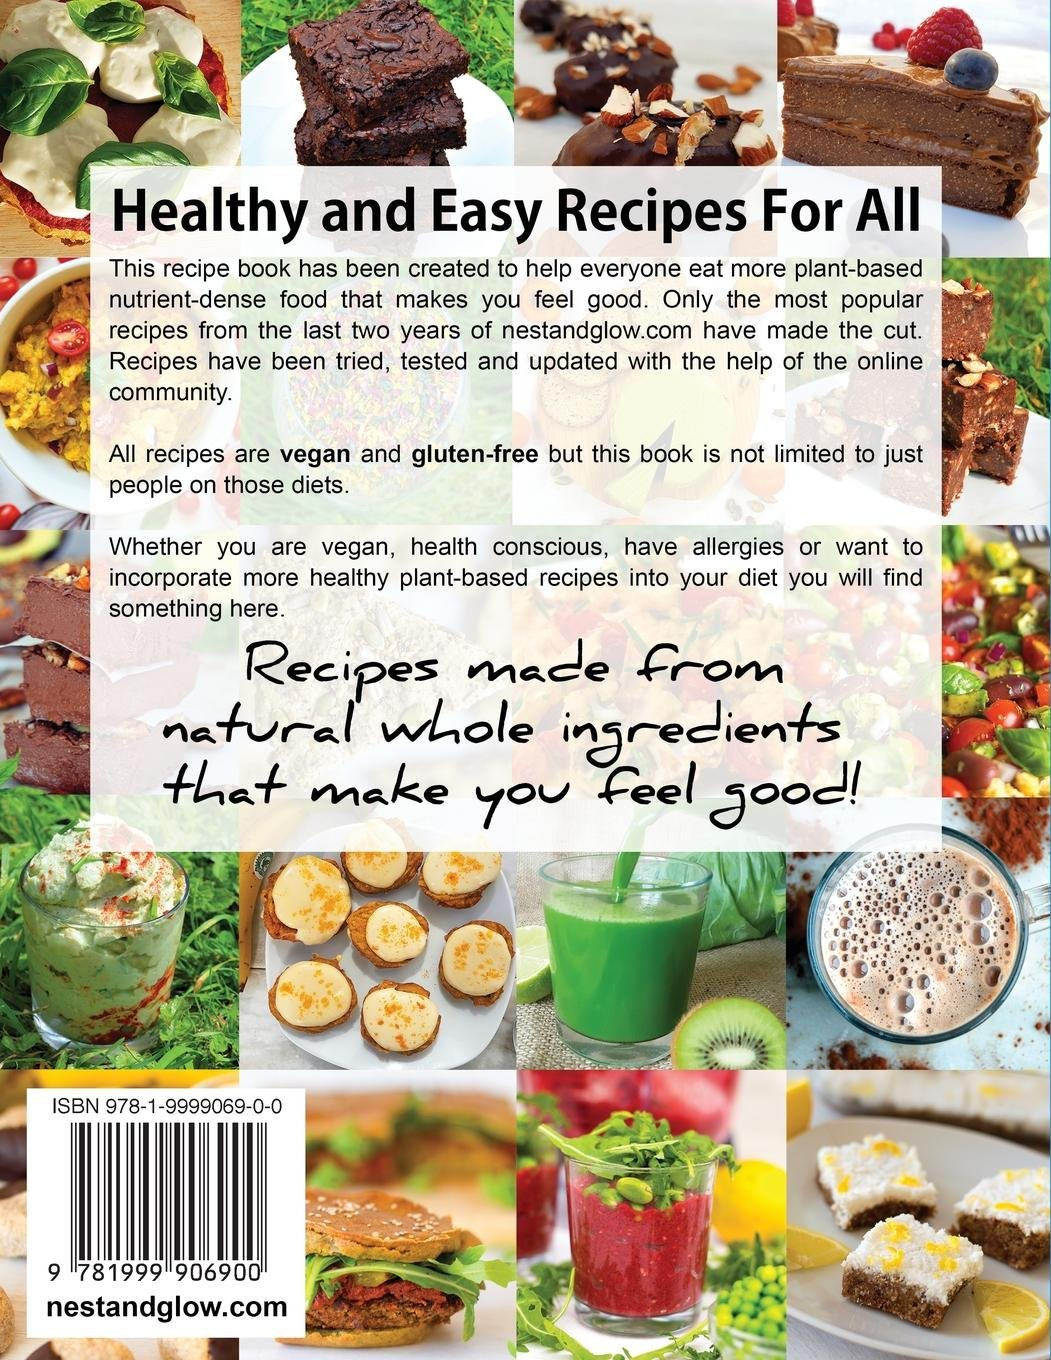 Healthy and easy over 100 plant based and nutrient dense recipes healthy and easy over 100 plant based and nutrient dense recipes amazon bastian durward libros en idiomas extranjeros forumfinder Images